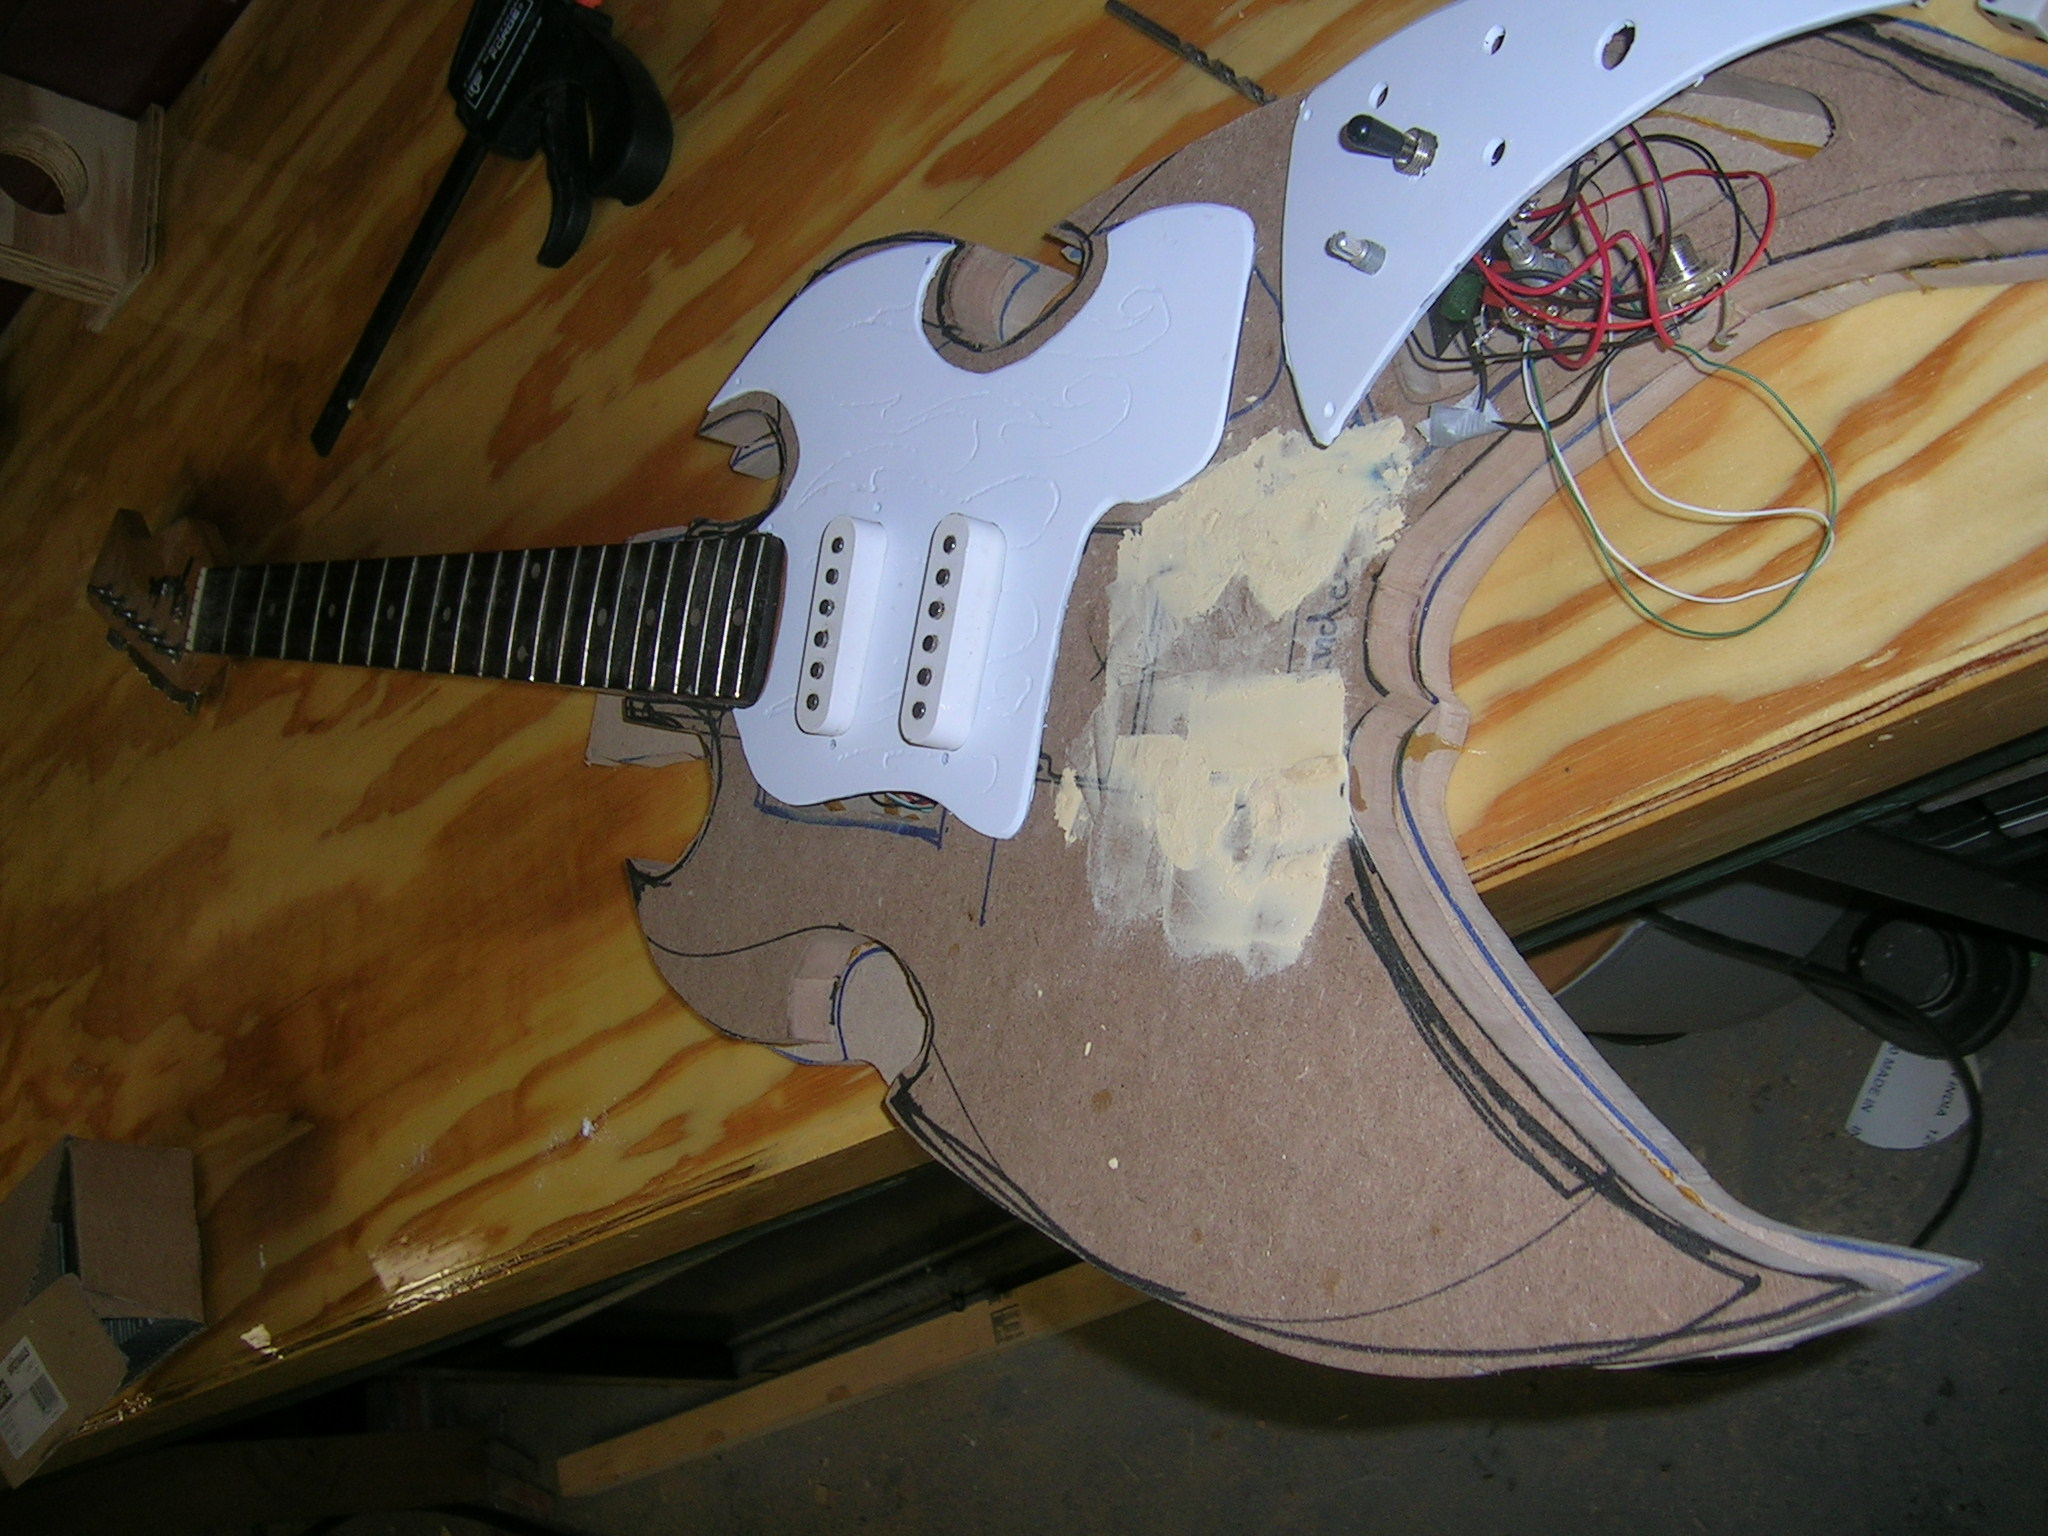 hight resolution of new look at an old wiring schemeand another cheap guitar makeover build a custom electric guitar